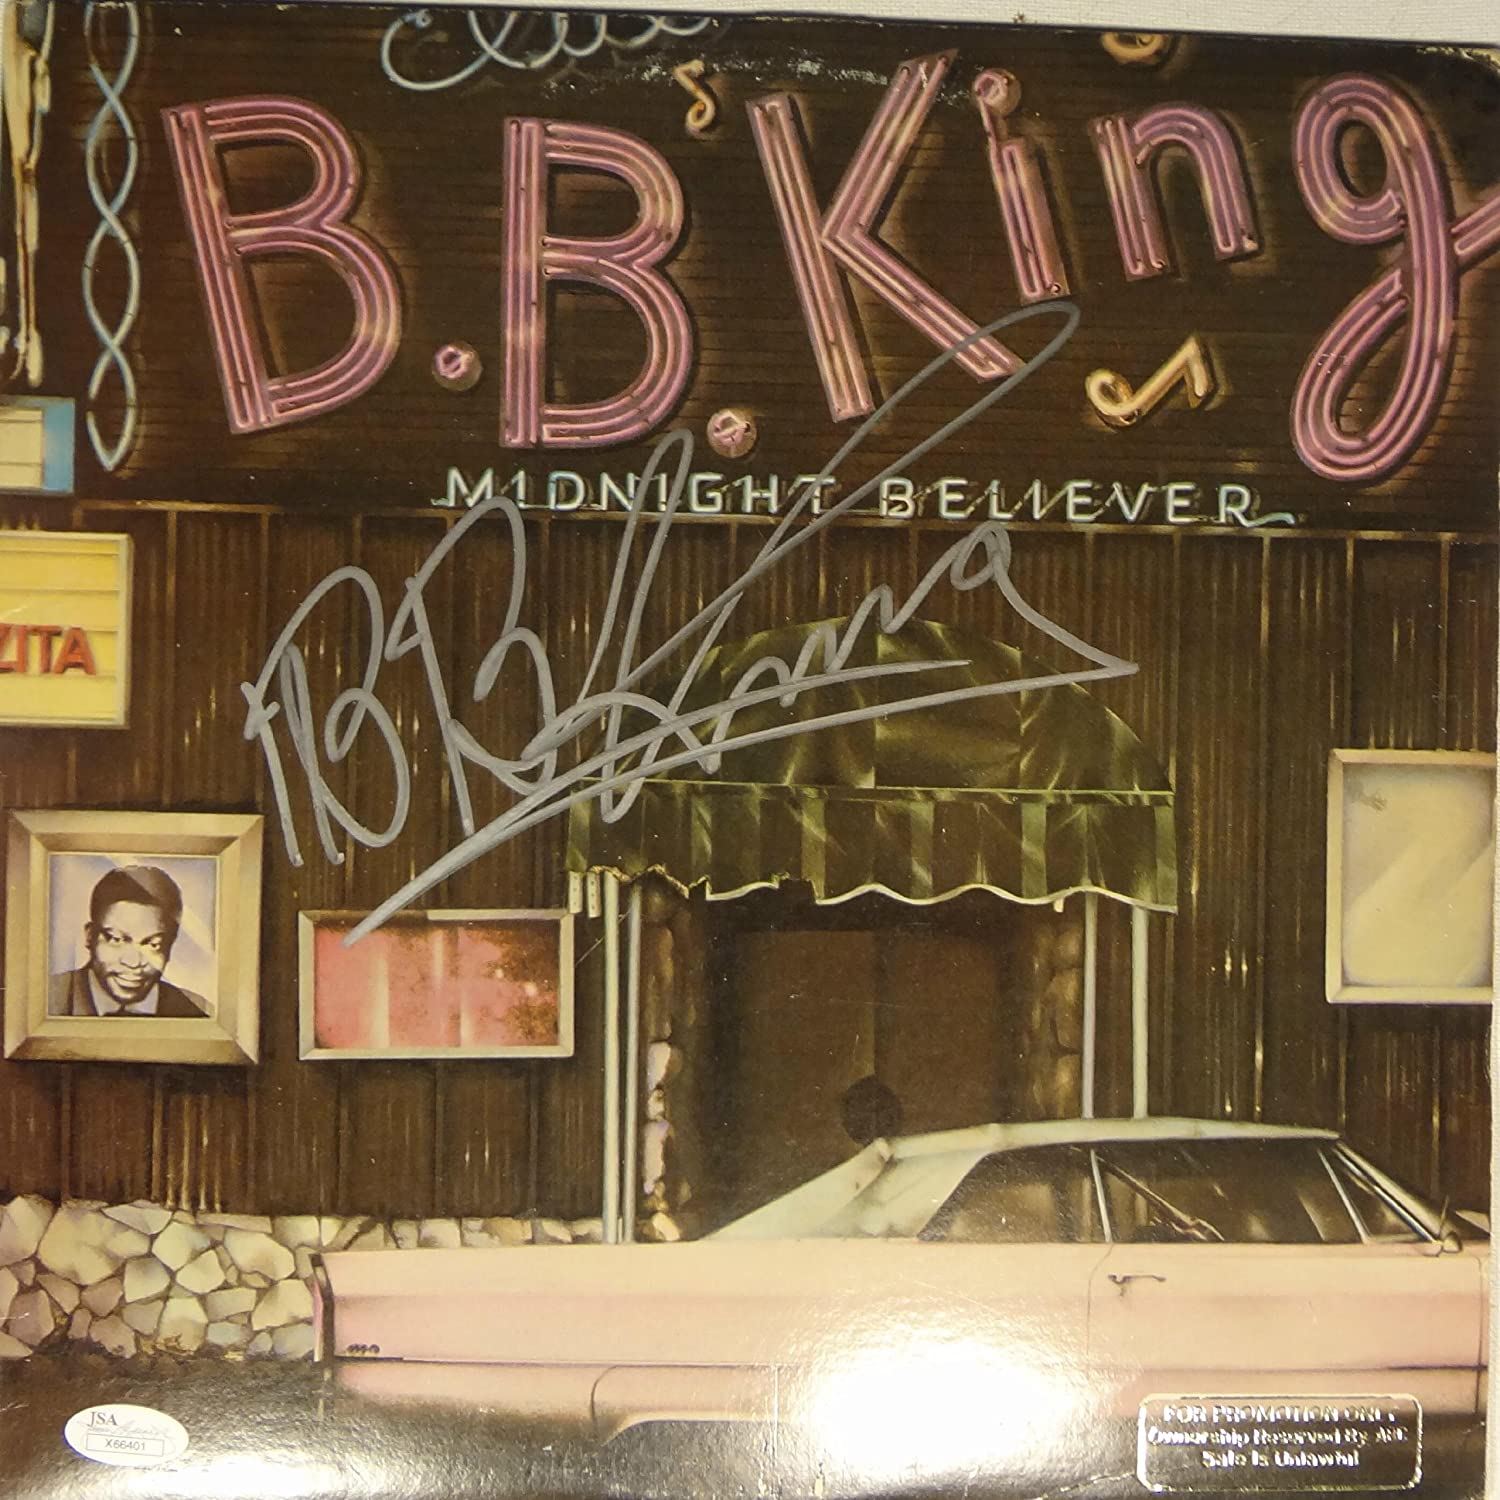 Signed B.B. King Autographed 1978 Midnight Believer Lp Album Jsa Loa # X66401 signed cnblue jung yong hwa autographed mini2nd album do disturb cd photobook signed poster 082017